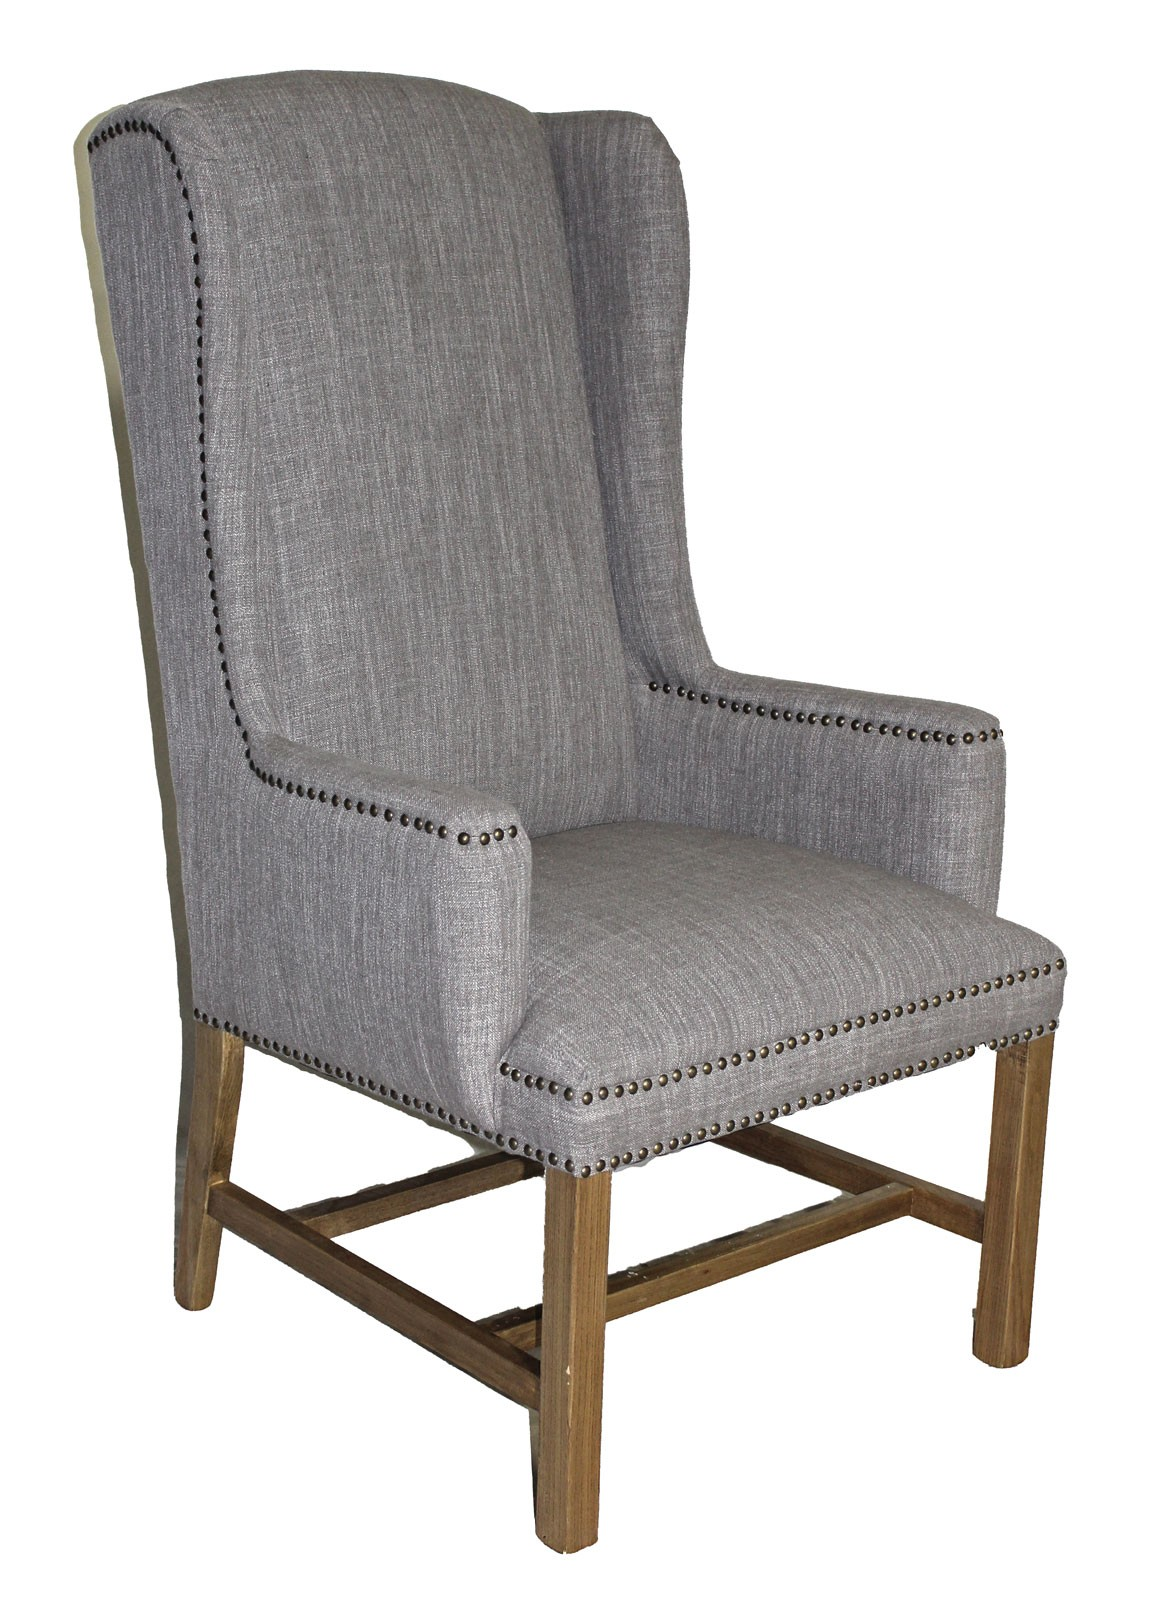 IC170 SG Smoke Greywing back chair tall back dining chair : ic190 smoke grey from harriswholesalefurniture.com size 1155 x 1600 jpeg 320kB